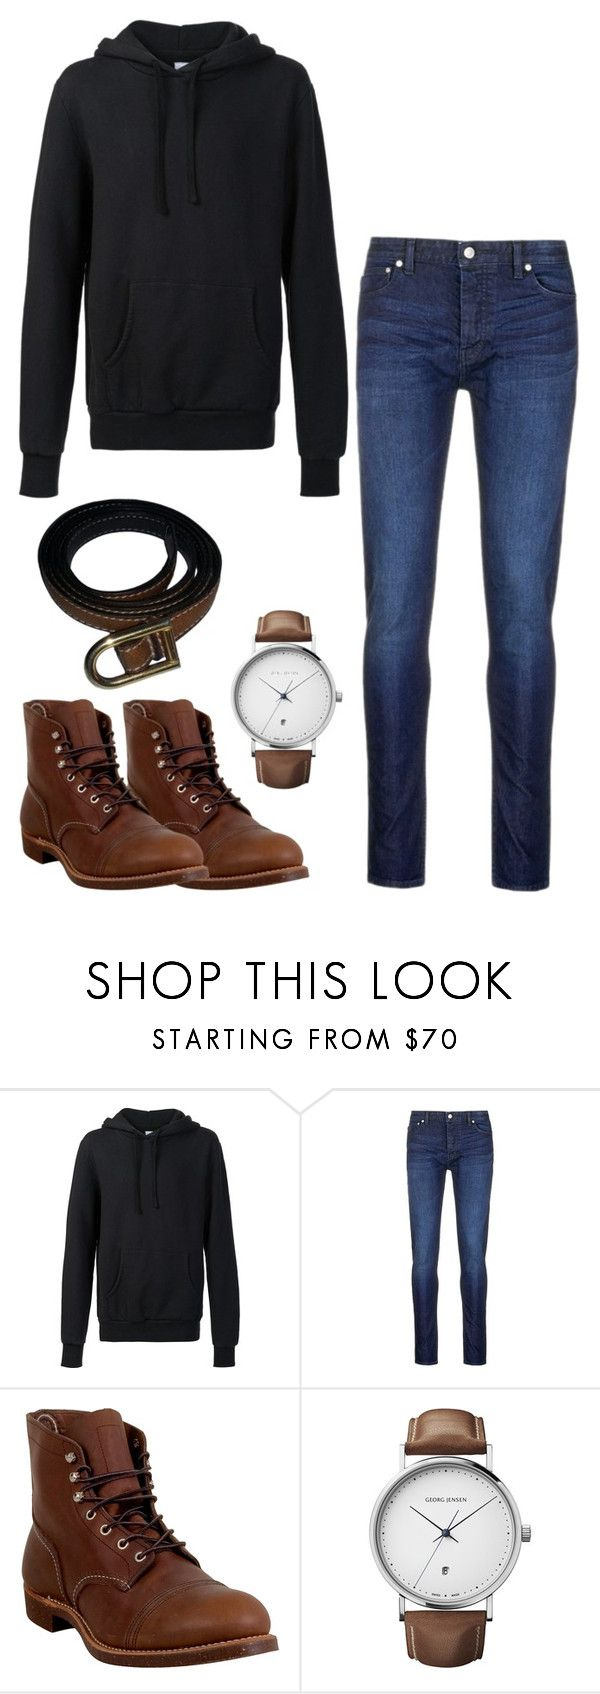 """Casual Outfit #35"" by riley-is-spiderman ❤ liked on Polyvore featuring 321, Topman, Red Wing, Georg Jensen, Delvaux, men's fashion and menswear"